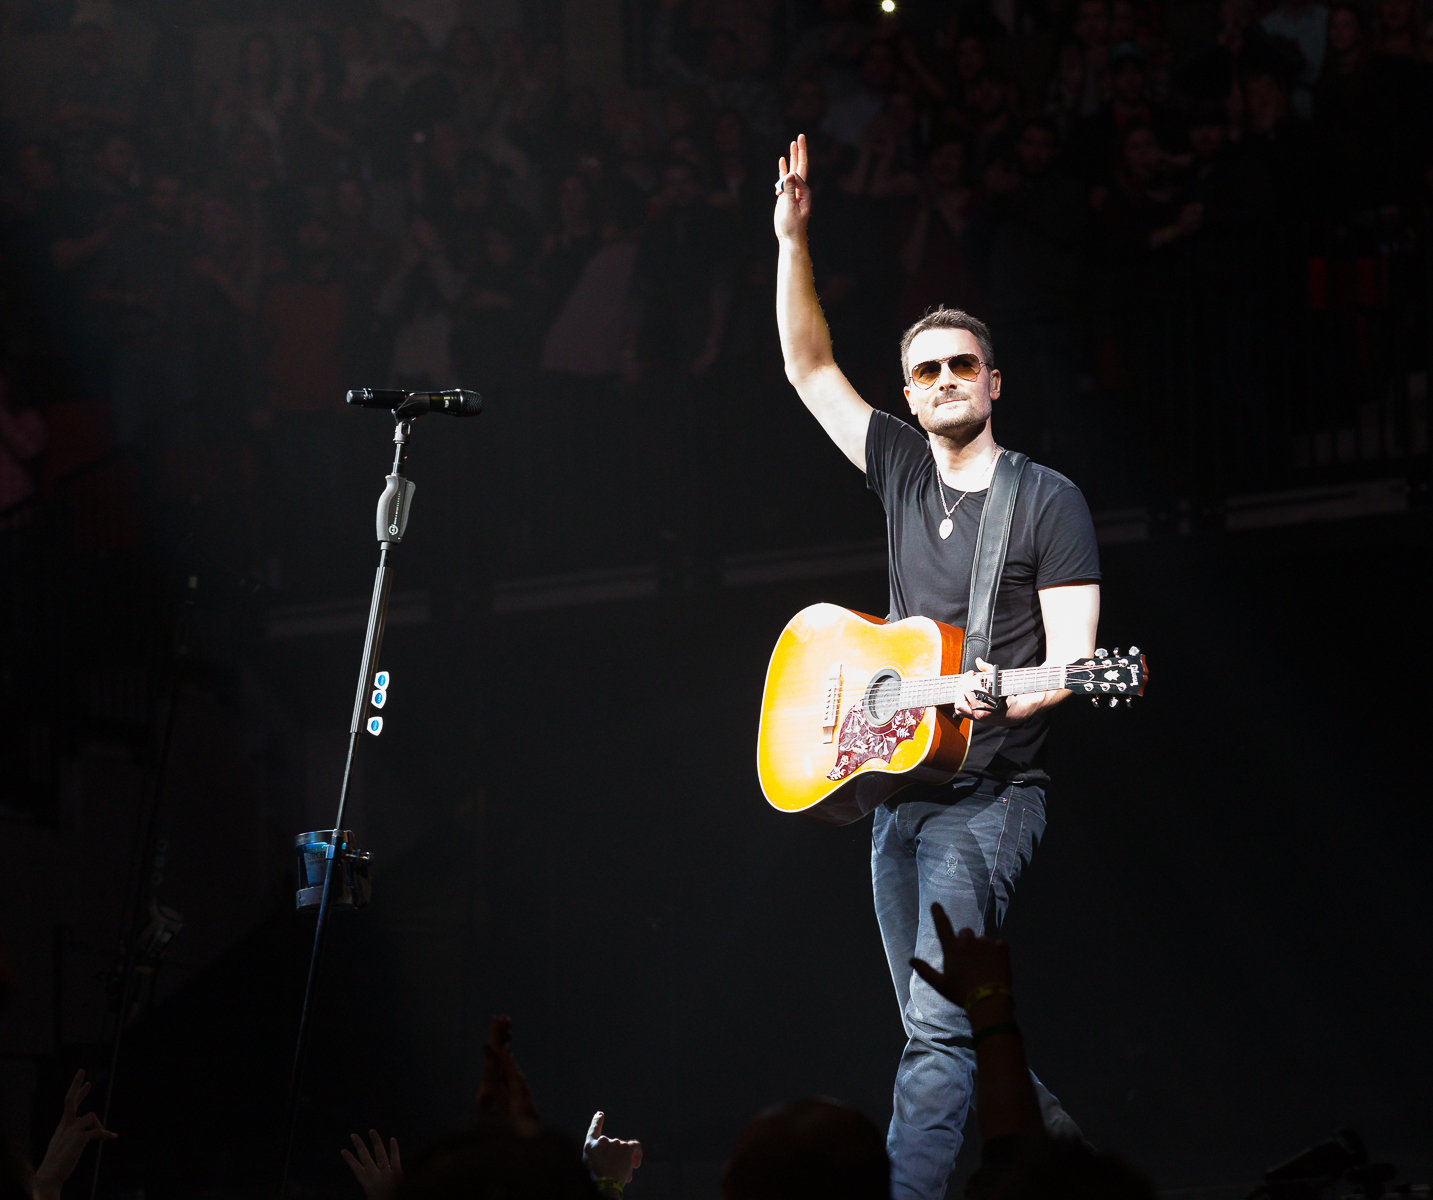 37 Tour Eric Church Opening Night 37 Song Setlist Holdin My Own Tour